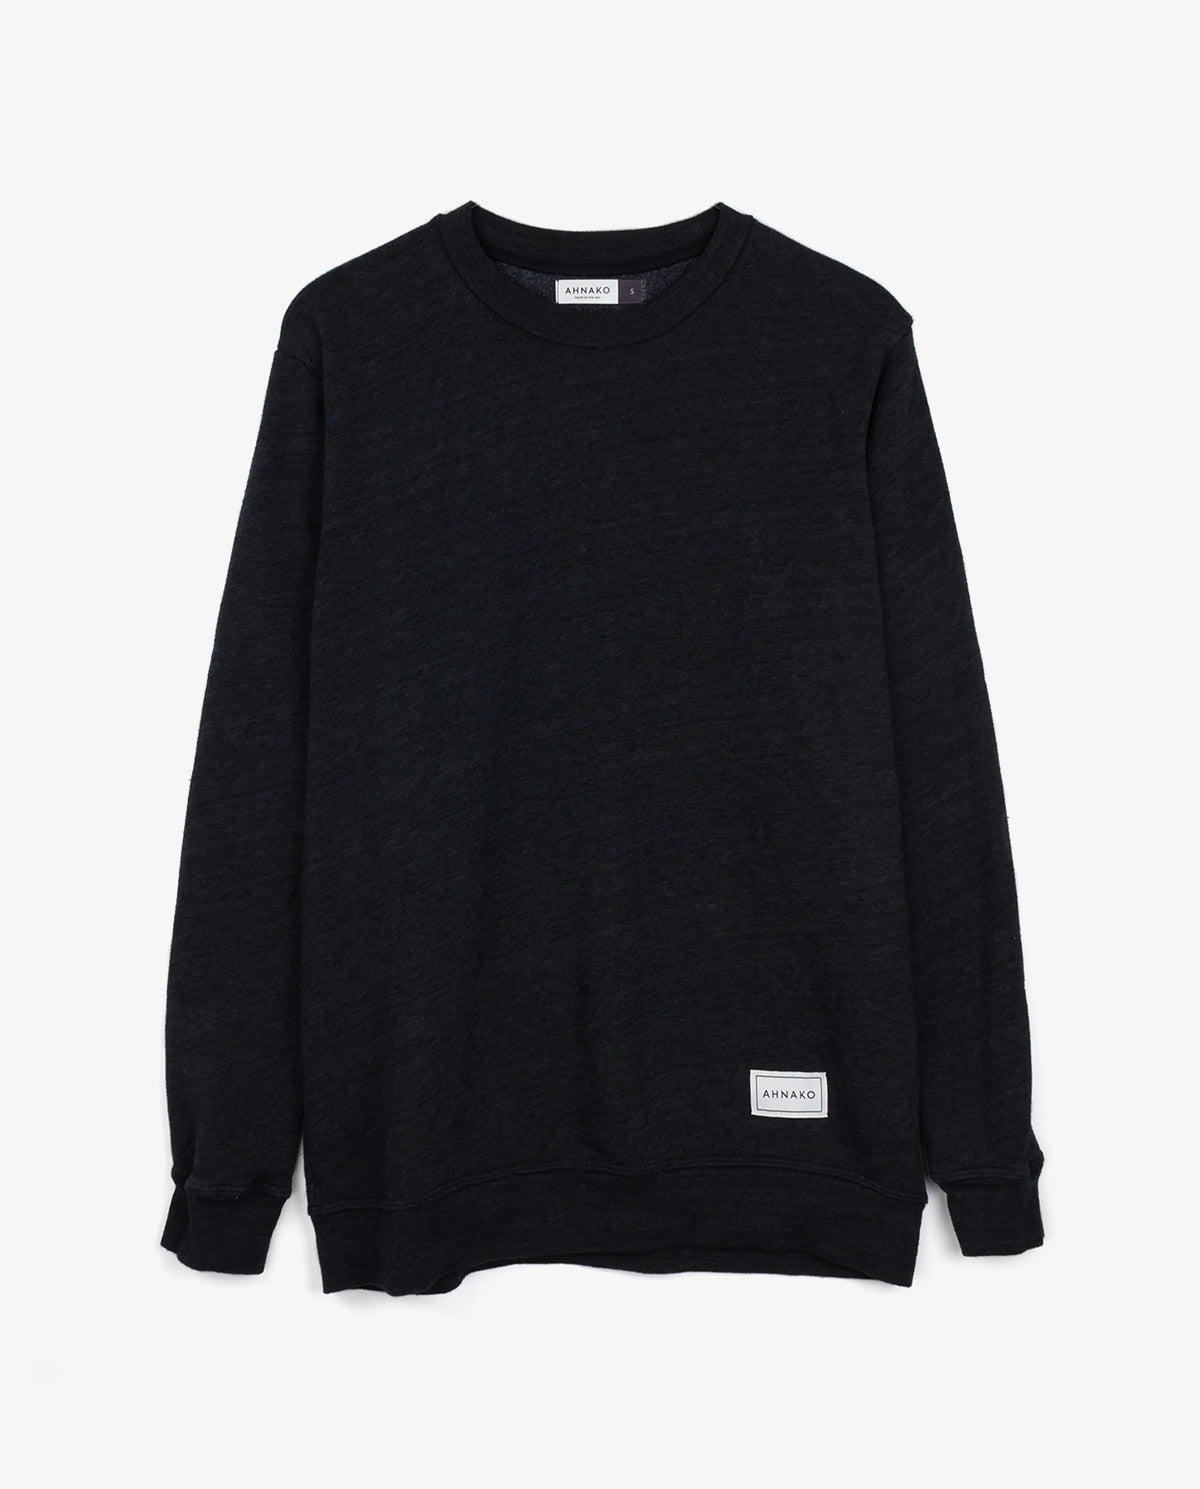 Ahnako Black Sweater with Logo Patch